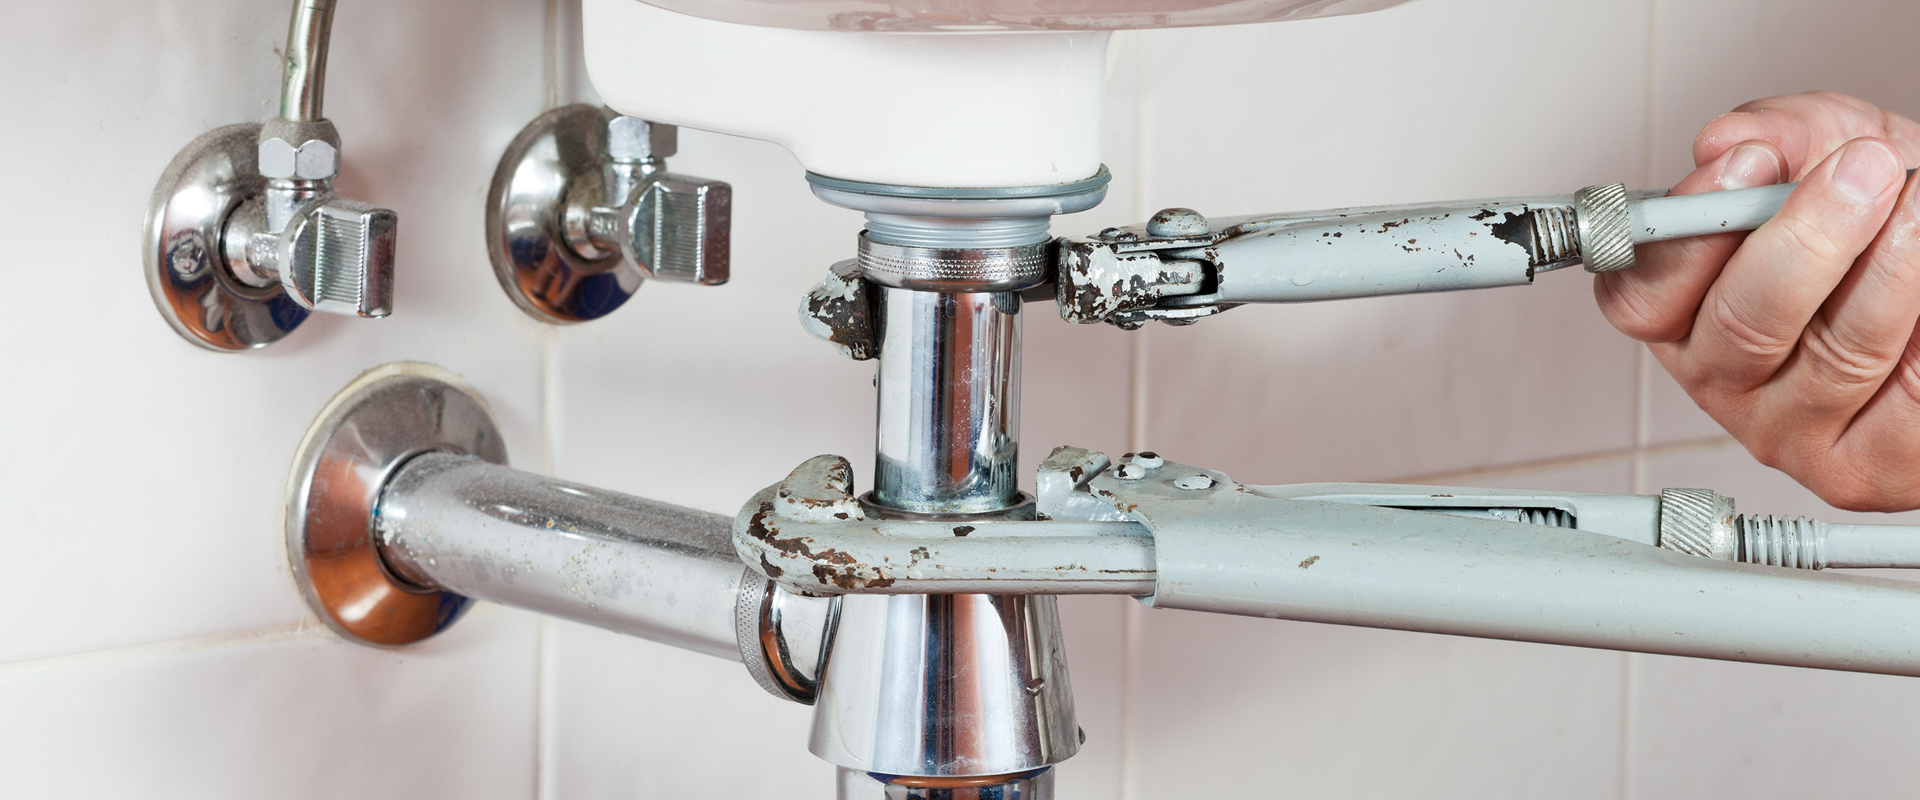 Knowing About Comprehensive Plumbing Services